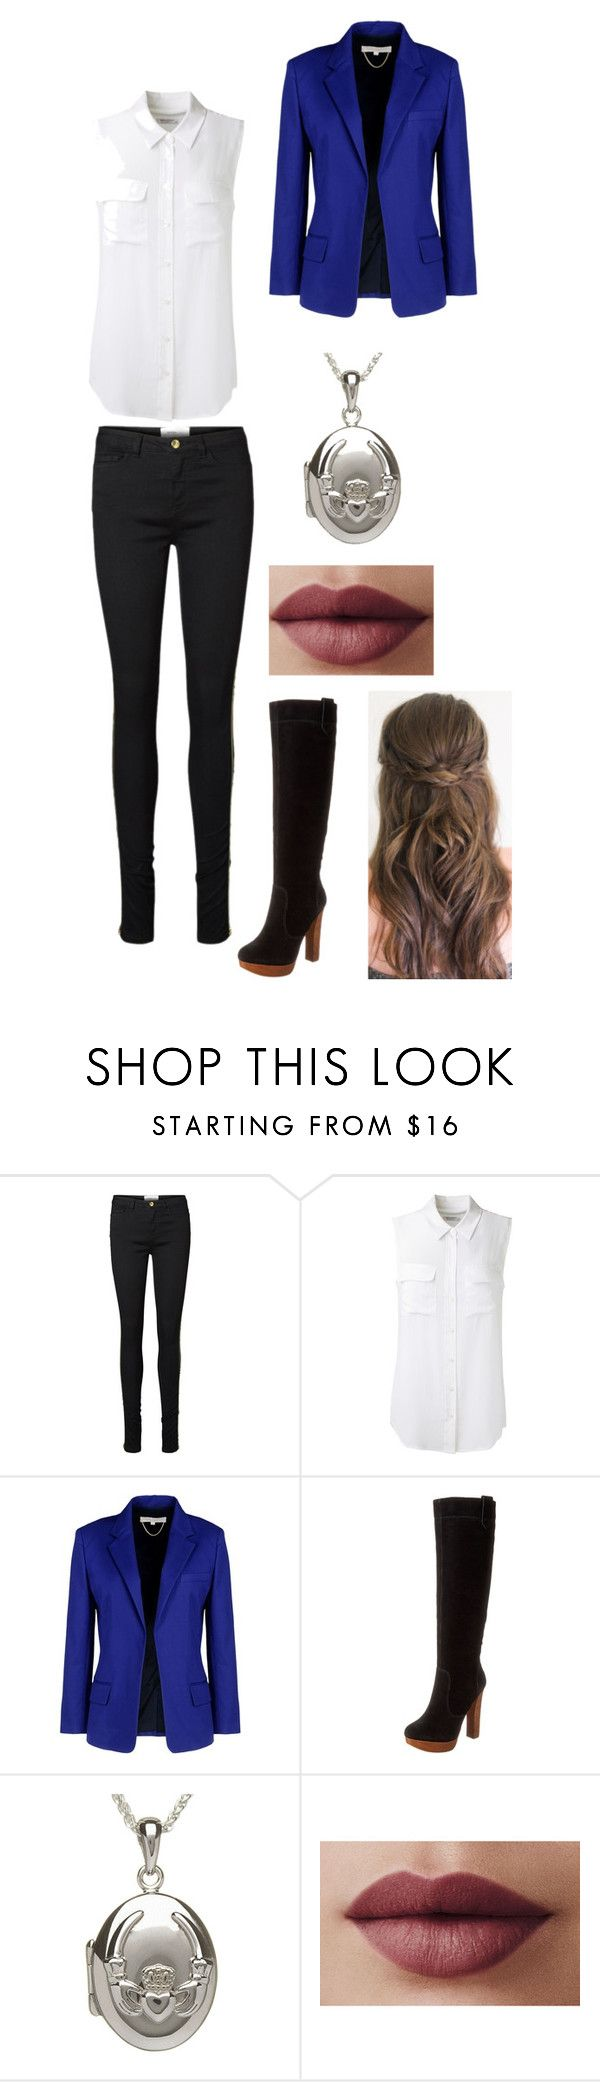 """""""Year of the Scorpions - Katharine , Home"""" by kittylnx ❤ liked on Polyvore featuring Vero Moda, Equipment, Vanessa Bruno, Boutique 9 and LORAC"""